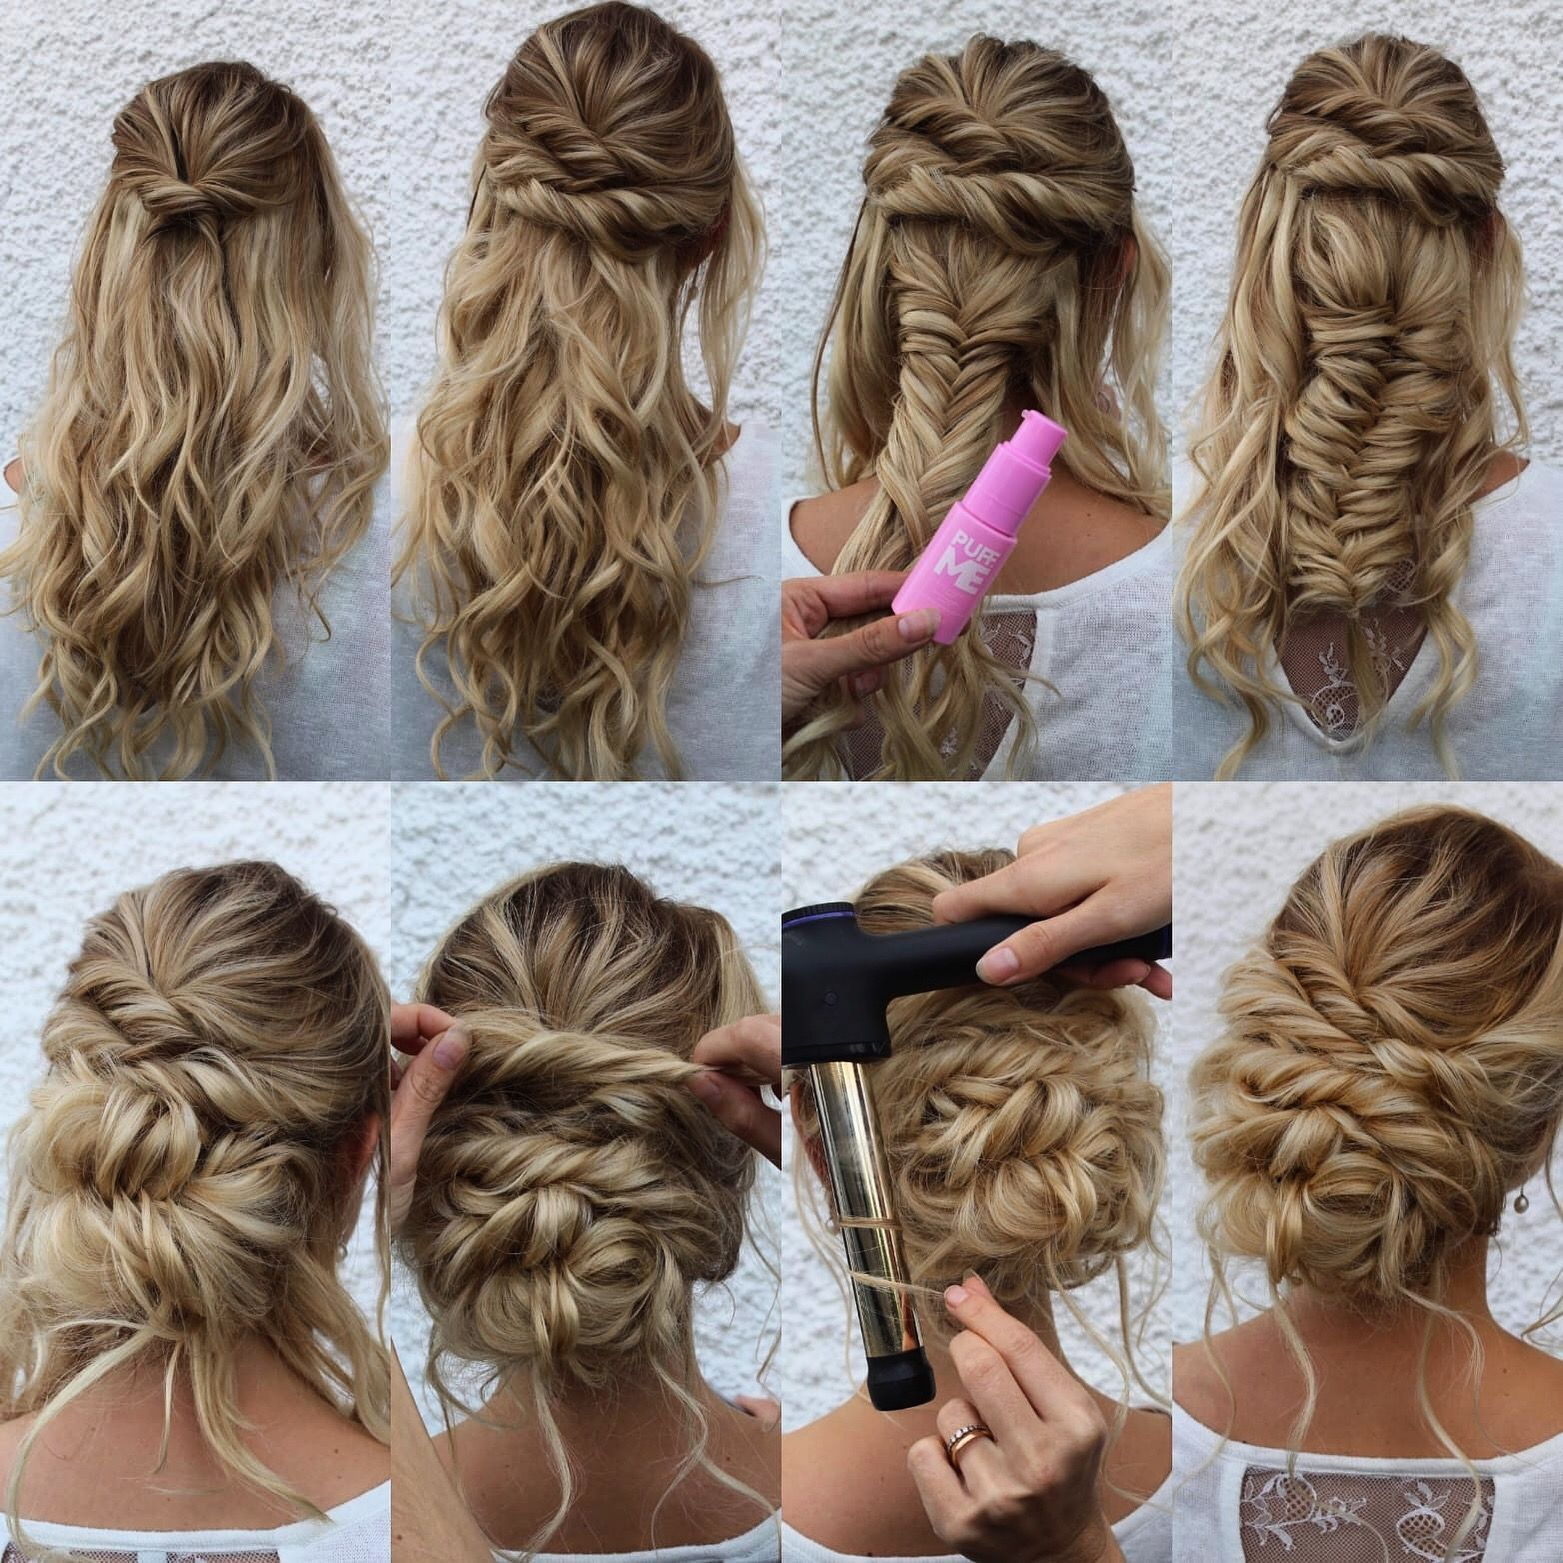 Step By Step Hair Updo Tutorial Ad 1 Updo Theupdogirl Hairgoals Hair Step Tutorial Updo Hair Updos Tutorials Hair Styles Long Hair Updo